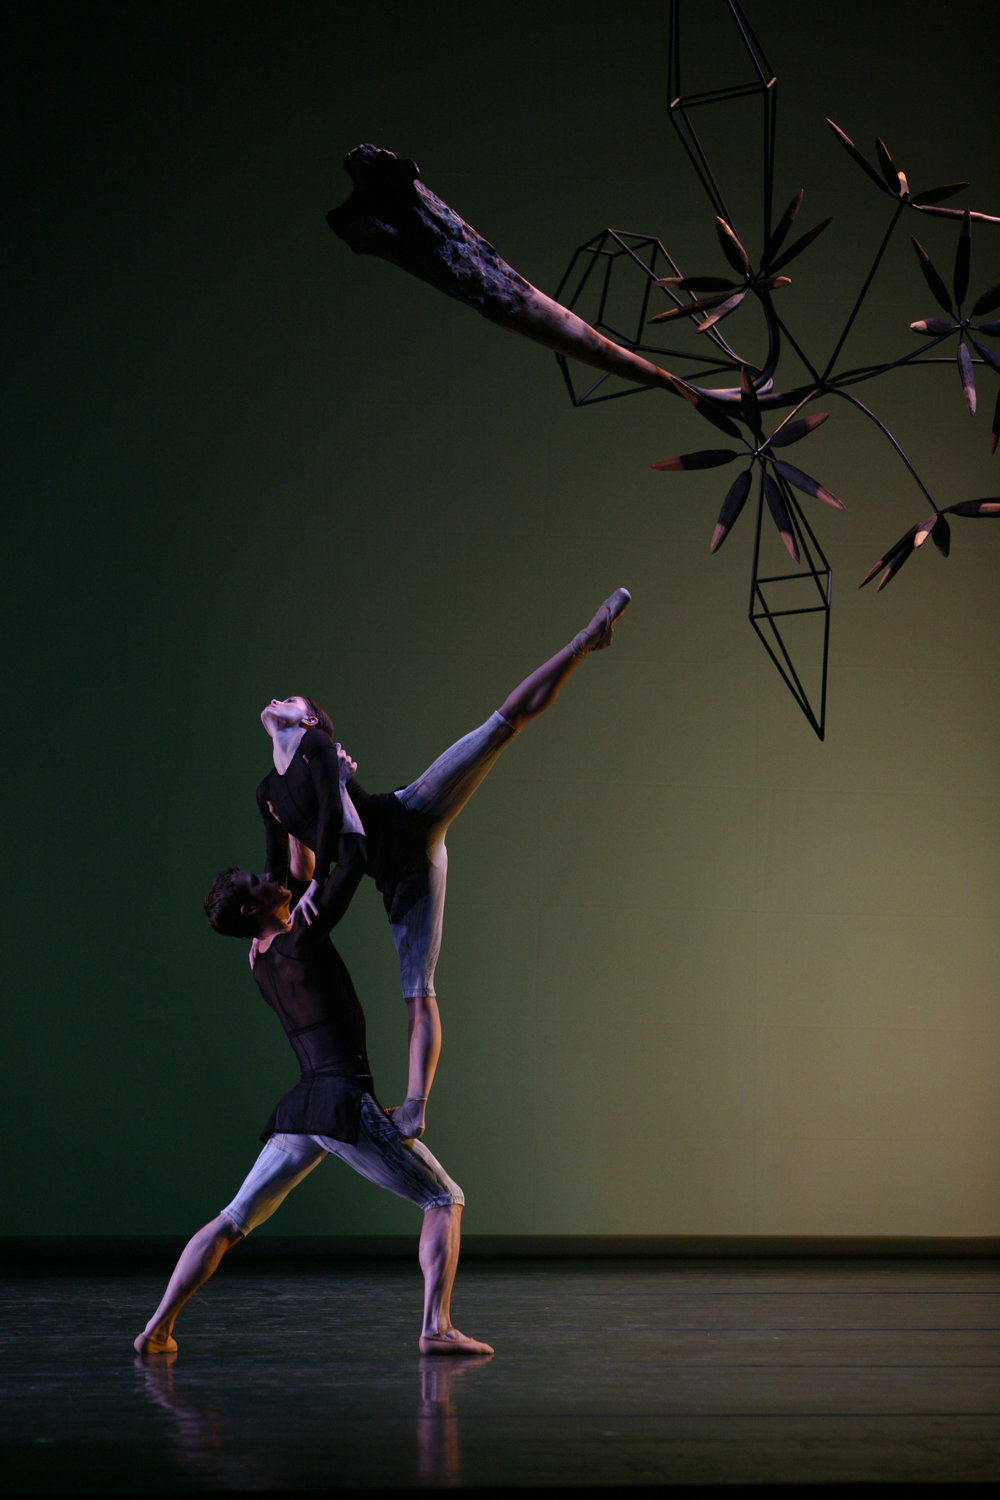 Aspen_SantaFe_Ballet_James_Surls_6.jpg